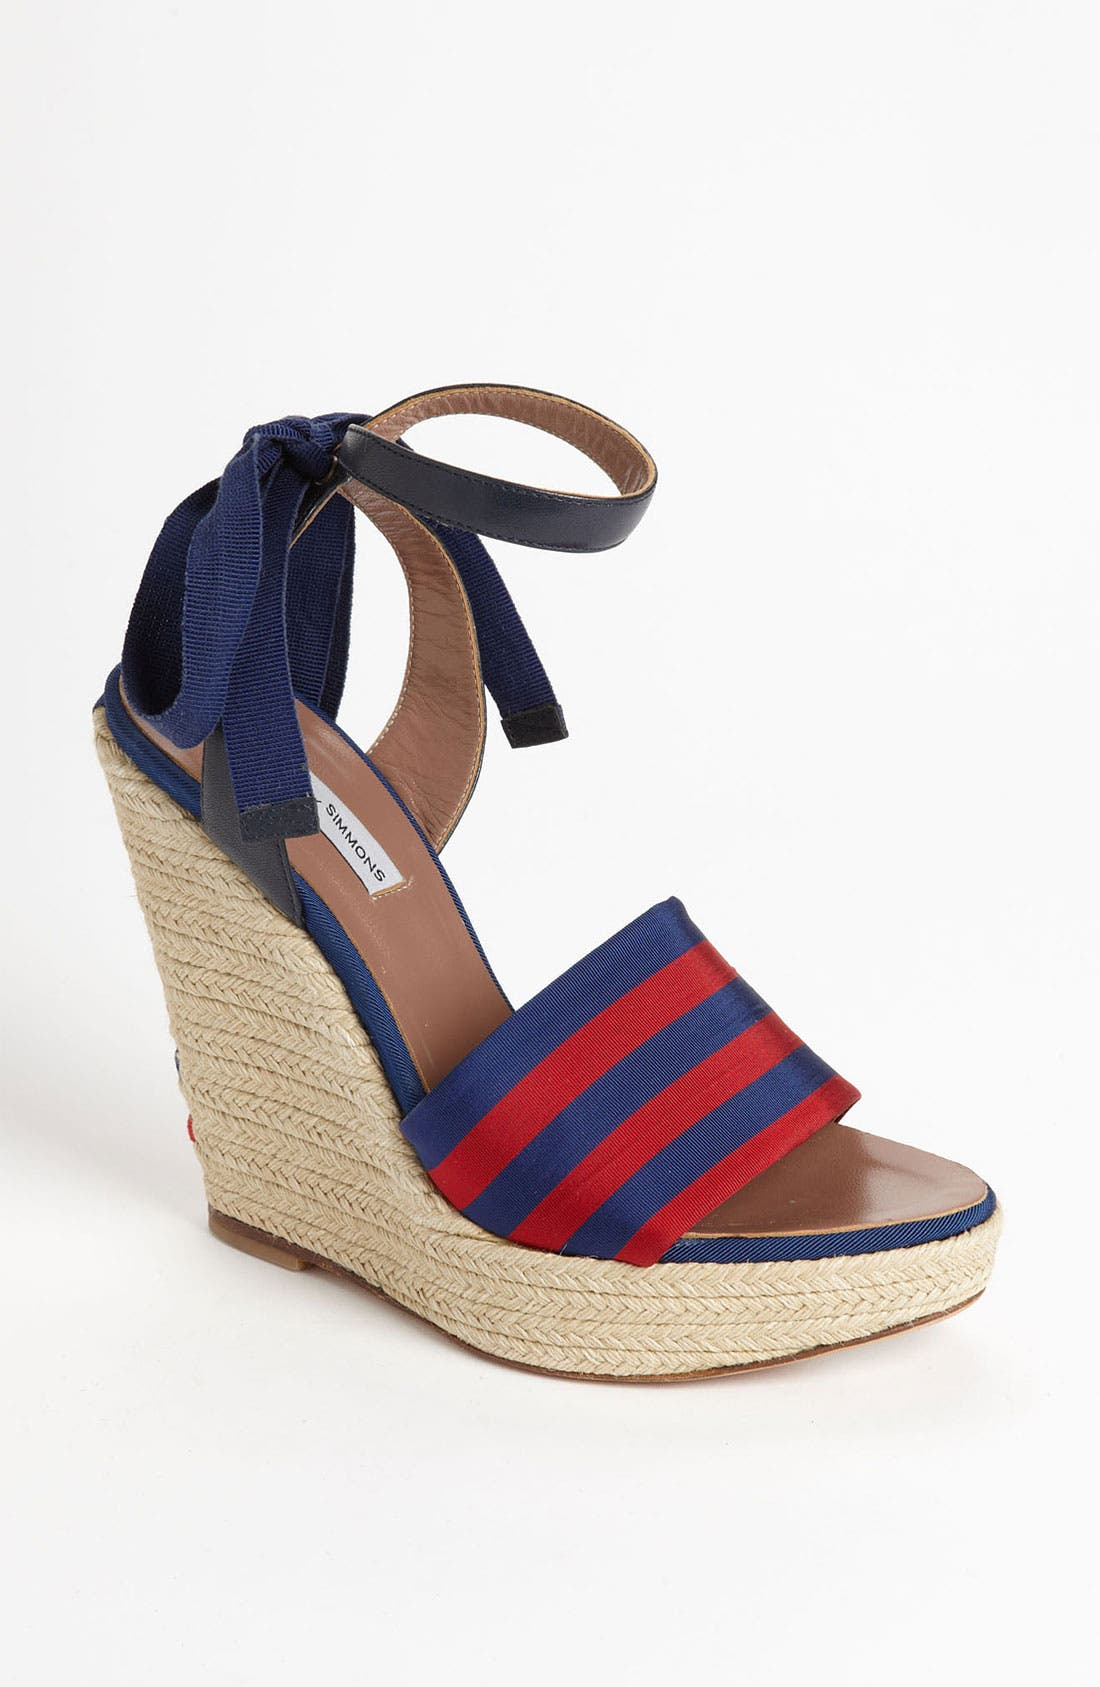 Alternate Image 1 Selected - Tabitha Simmons 'Alice' Wedge Sandal